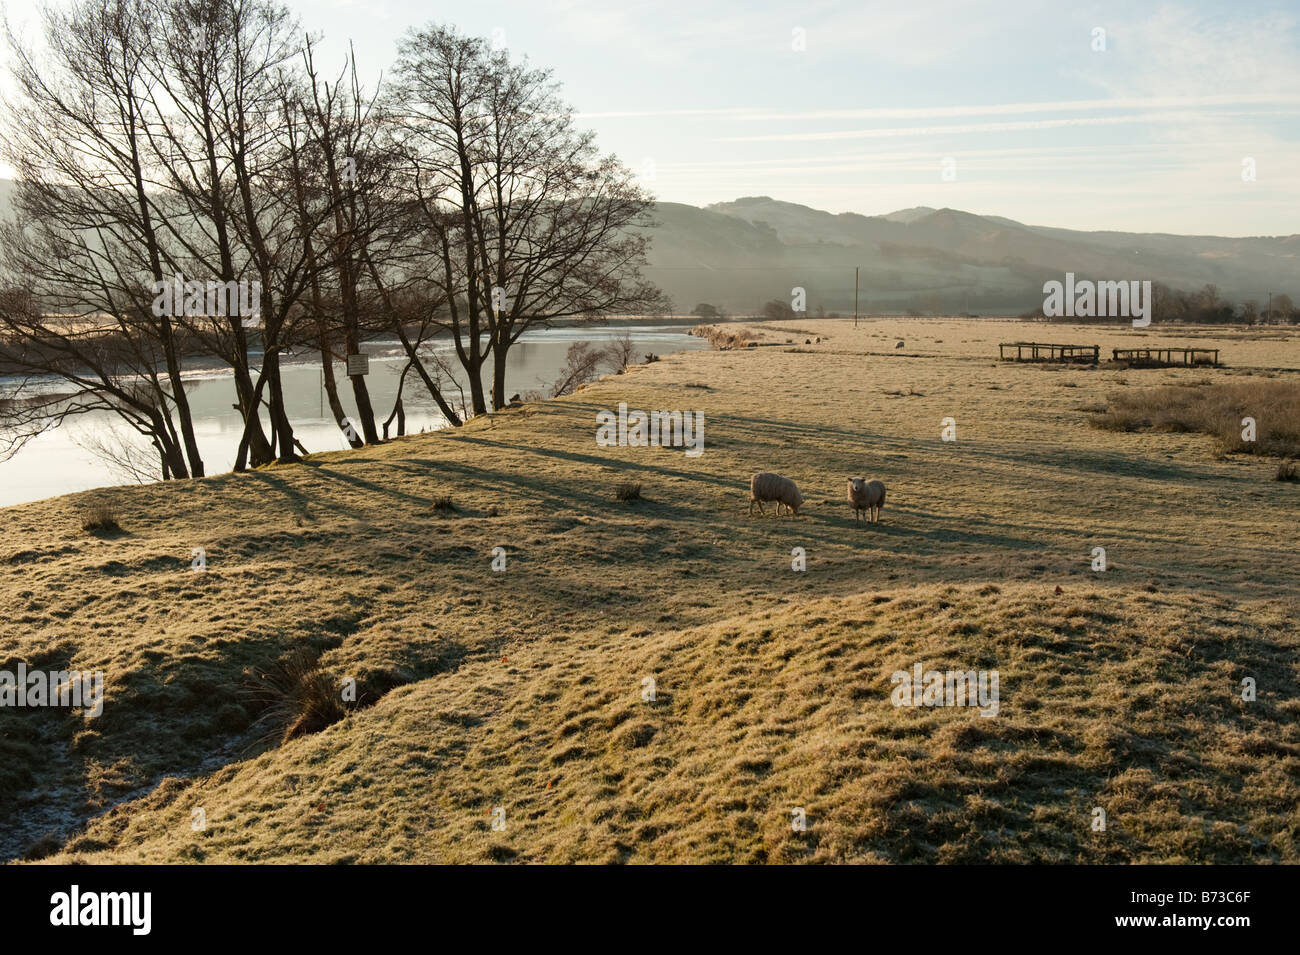 Early morning in the Dyfi Valley biosphere - cold frosty weather, January 2009, Wales UK - Stock Image